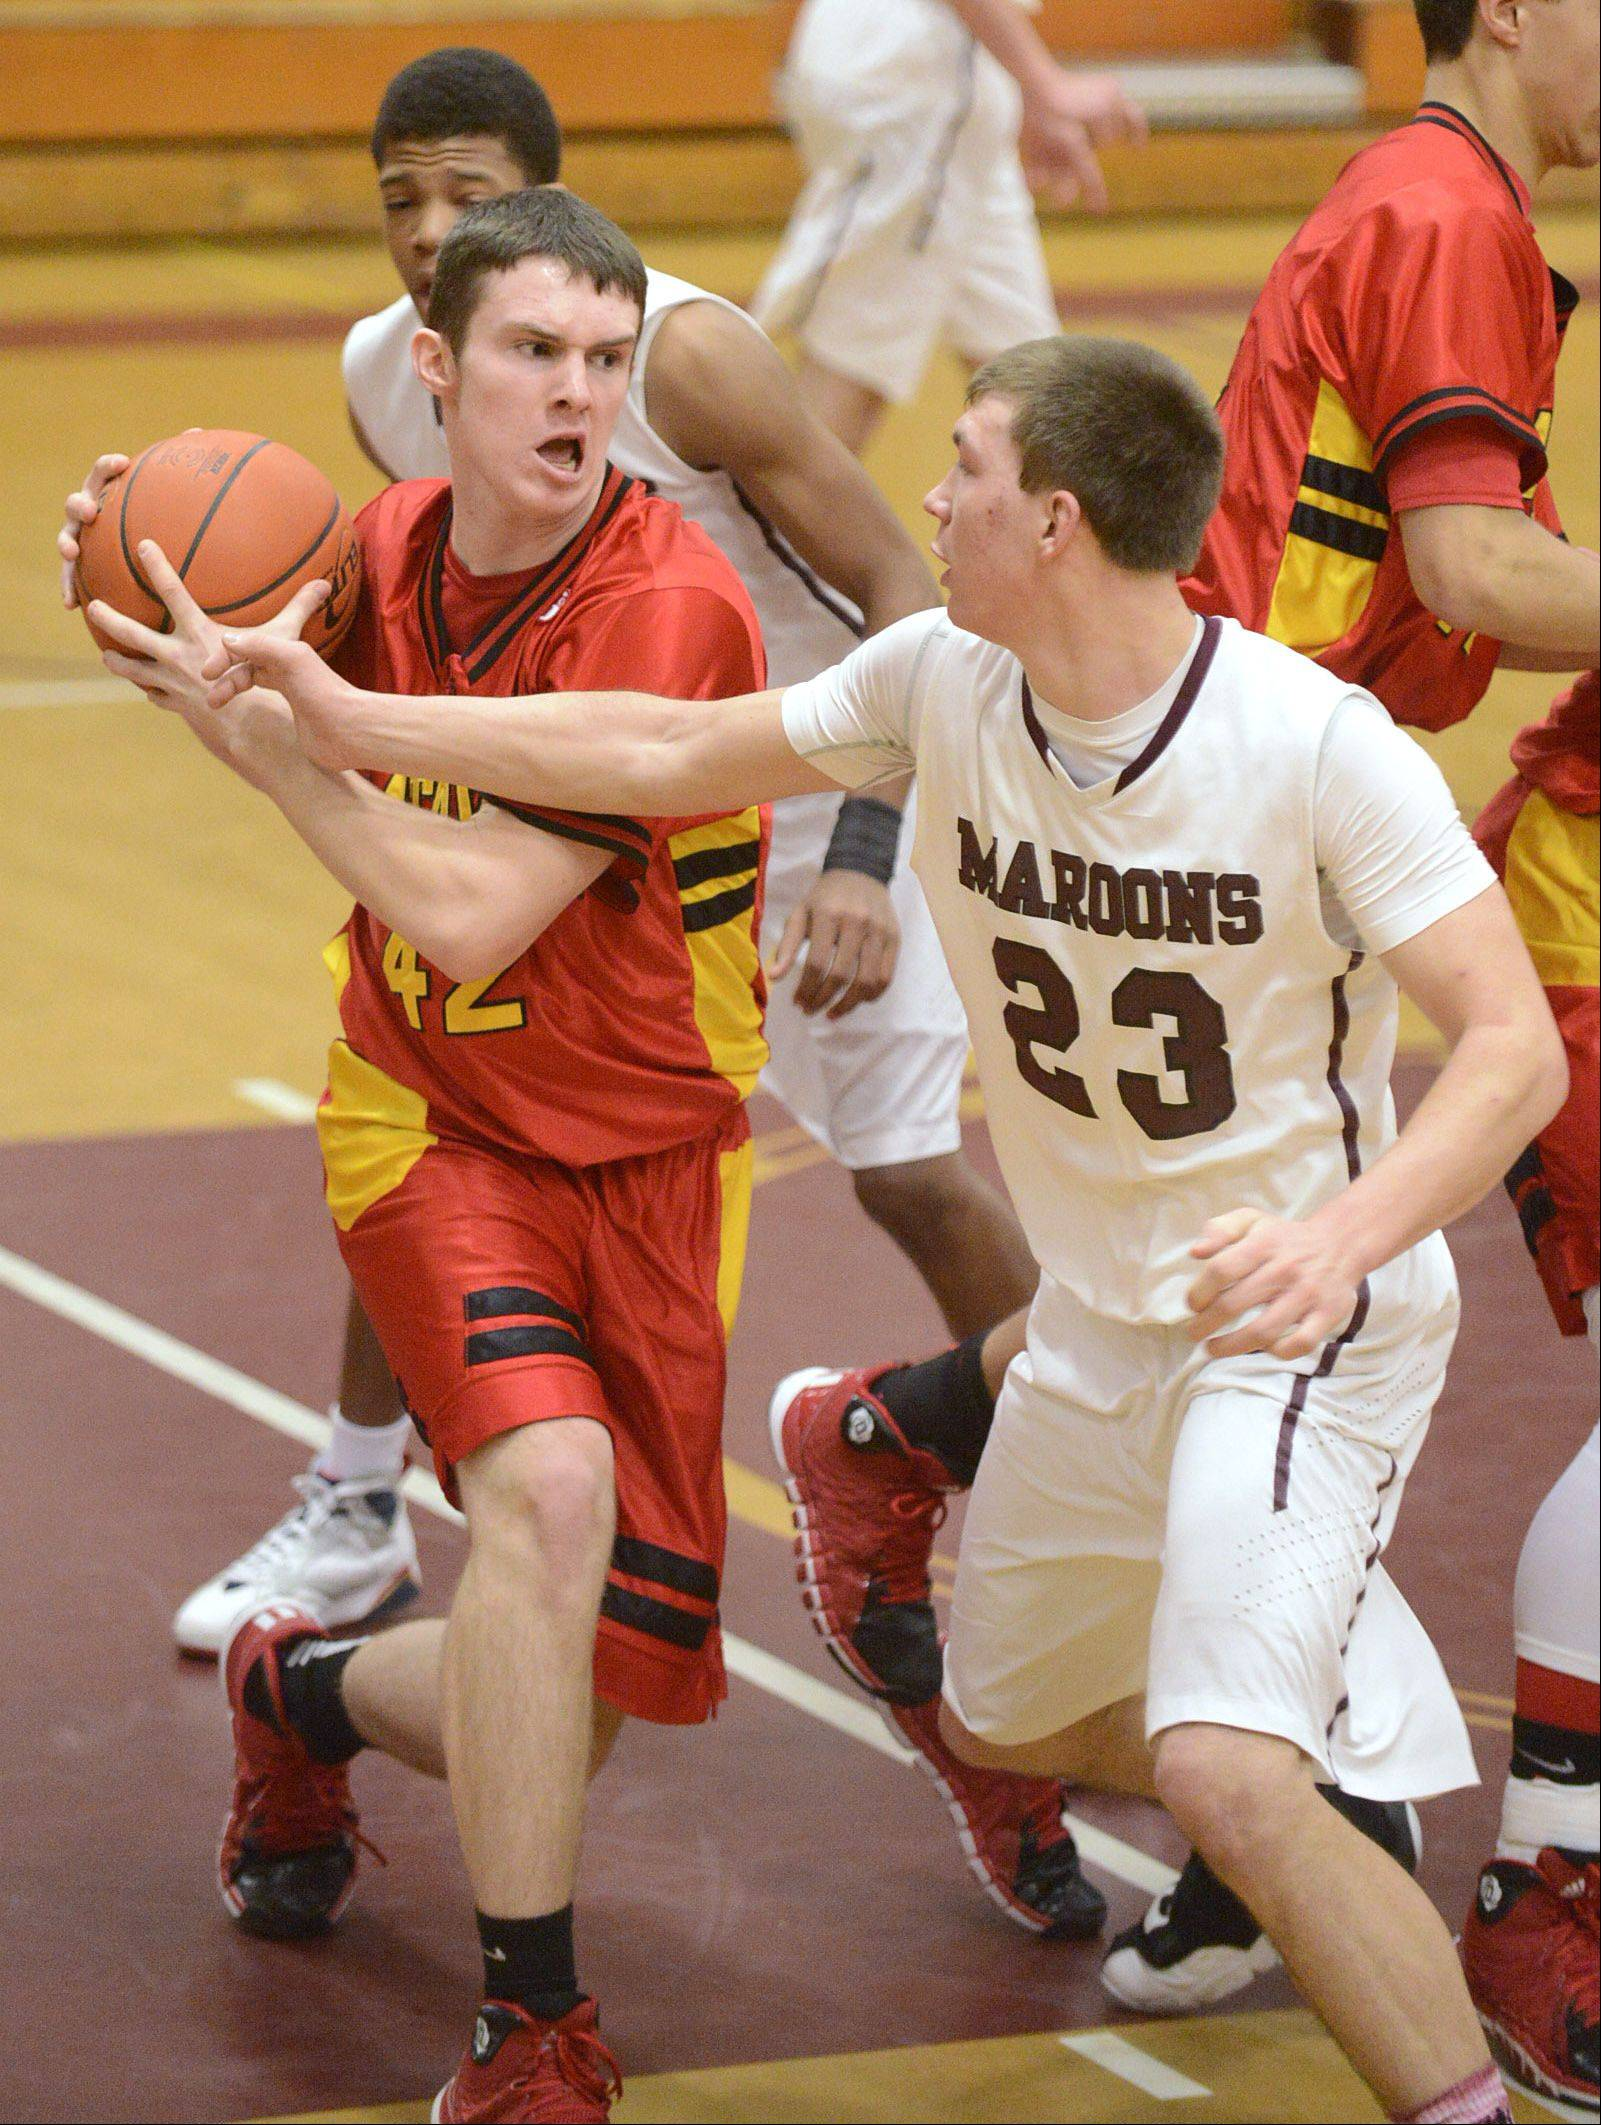 Batavia's Ryan Olson hangs on tight to a rebound near Elgin's Ryan Sitter in the second quarter on Saturday.